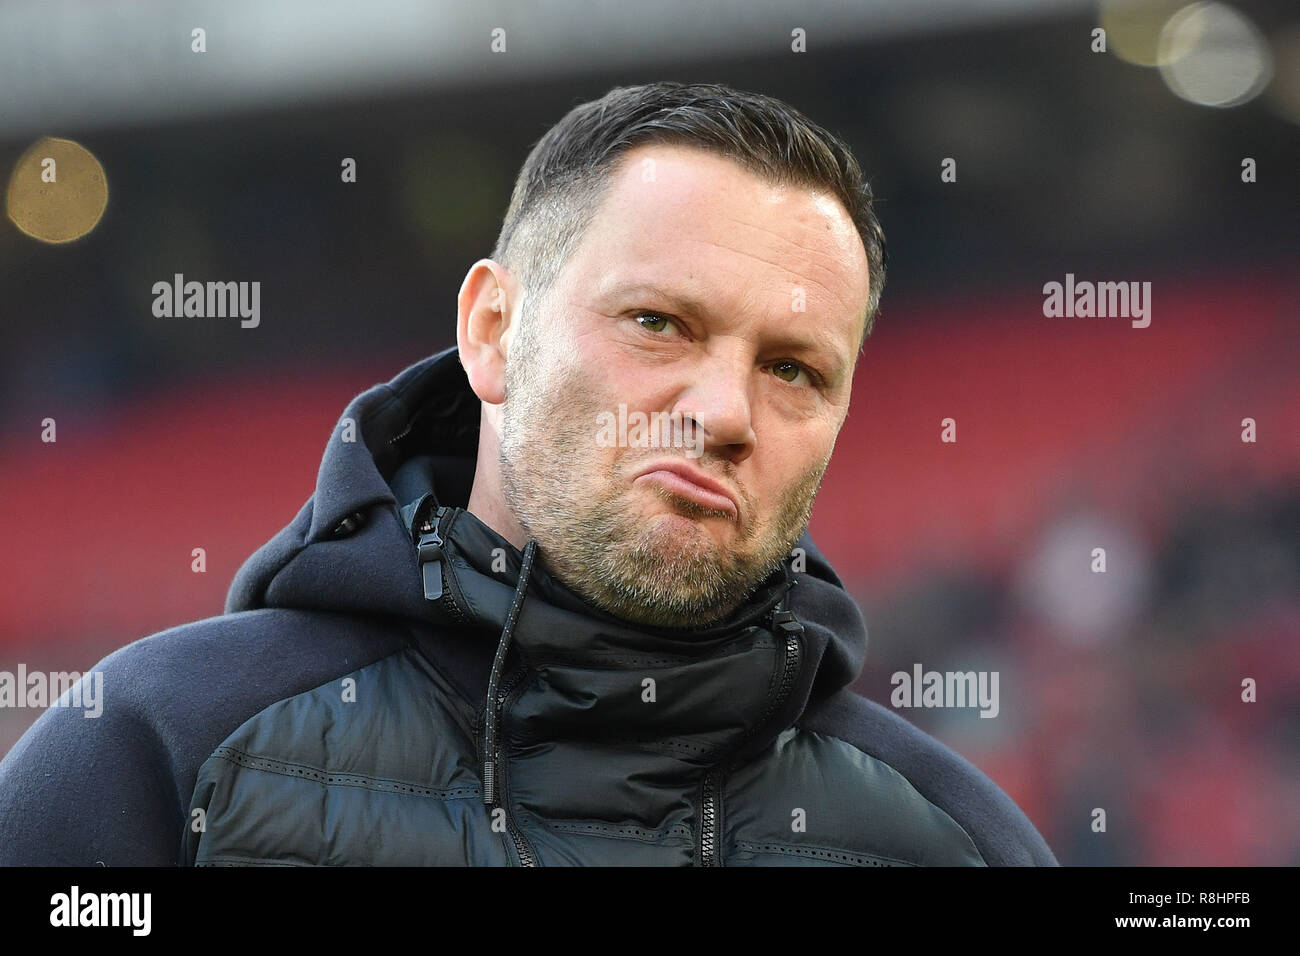 Stuttgart, Deutschland. 15th Dec, 2018. Pal DARDAI, coach (Hertha BSC), draws a pout, contrite, single image, single cut motif, portrait, portrait, portrait. Soccer 1. Bundesliga, 15.matchday, matchday15, VFB Stuttgart-Hertha BSC (B) 2-1, on 01/09/2018 in Stuttgart/Germany. MERCEDES BENZ ARENA. DFL REGULATIONS PROHIBIT ANY USE OF PHOTOGRAPH AS IMAGE SEQUENCES AND/OR QUASI VIDEO. | usage worldwide Credit: dpa/Alamy Live News - Stock Image